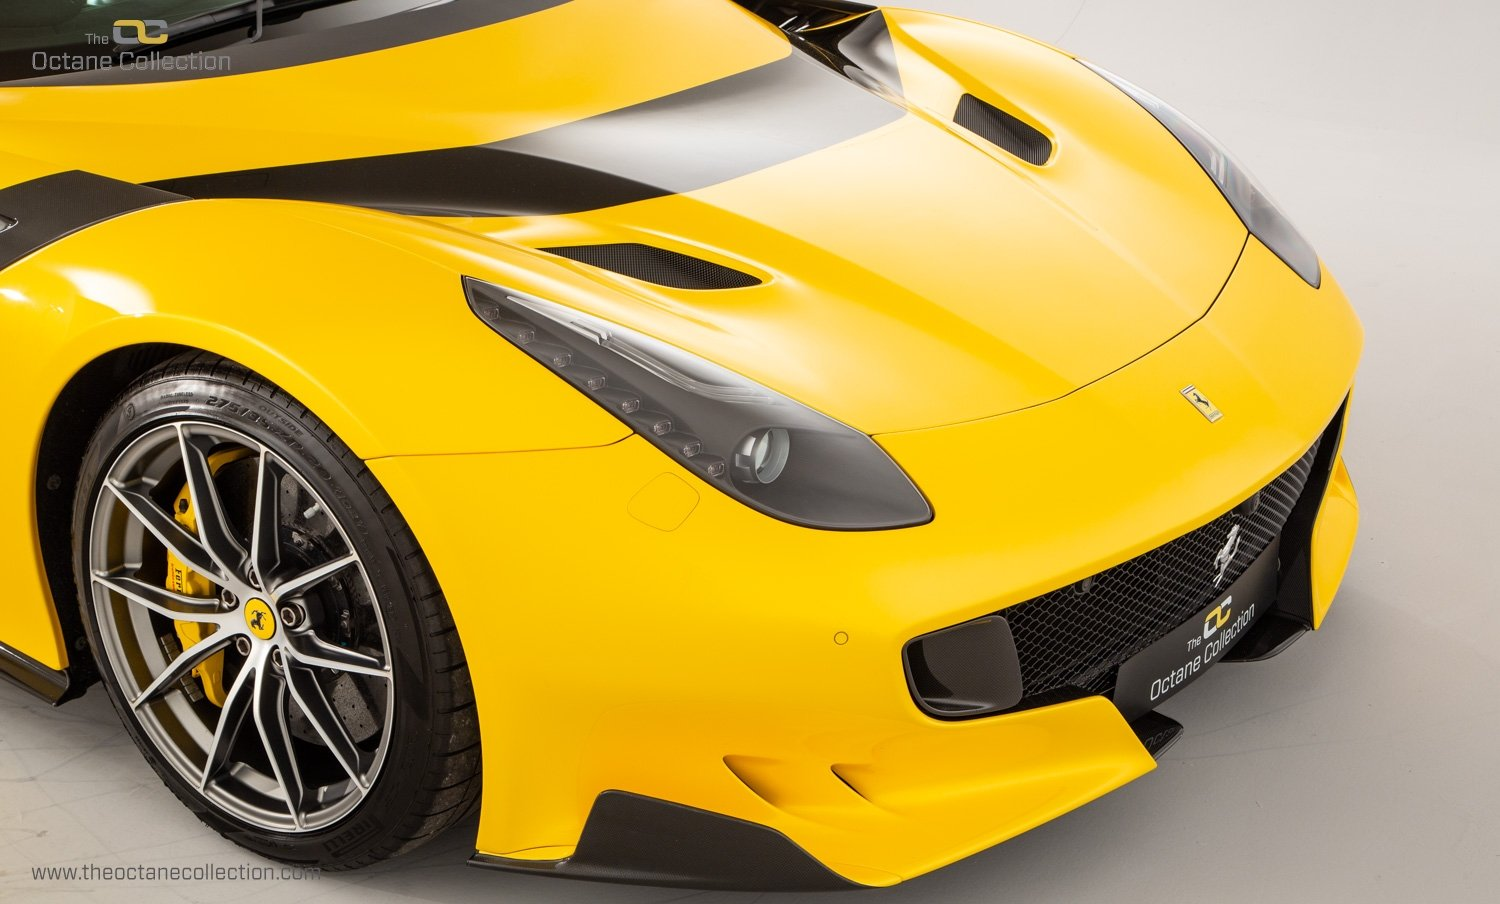 2016 FERRARI F12 TDF // 1 OF 50 UK RHD // TRIPLE LAYER PAINT For Sale (picture 4 of 23)